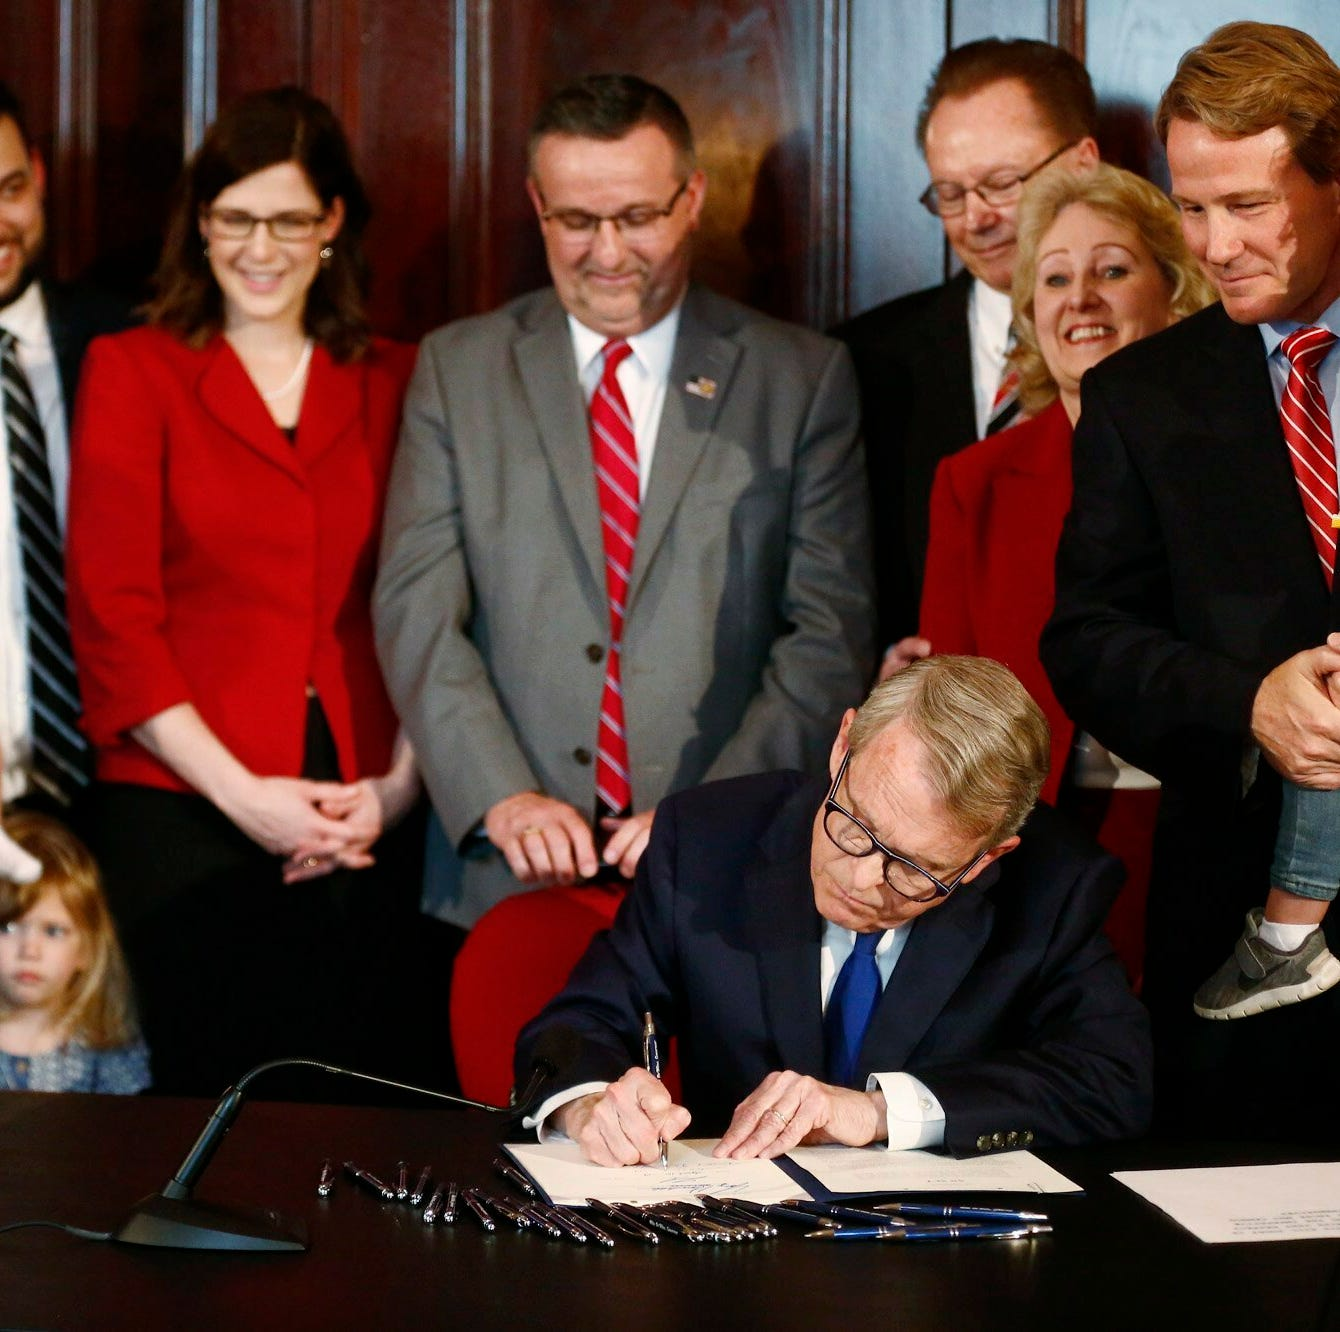 Ohio is the latest state to pass a 'heartbeat' abortion bill. Could the legal challenges eventually upend Roe v. Wade?